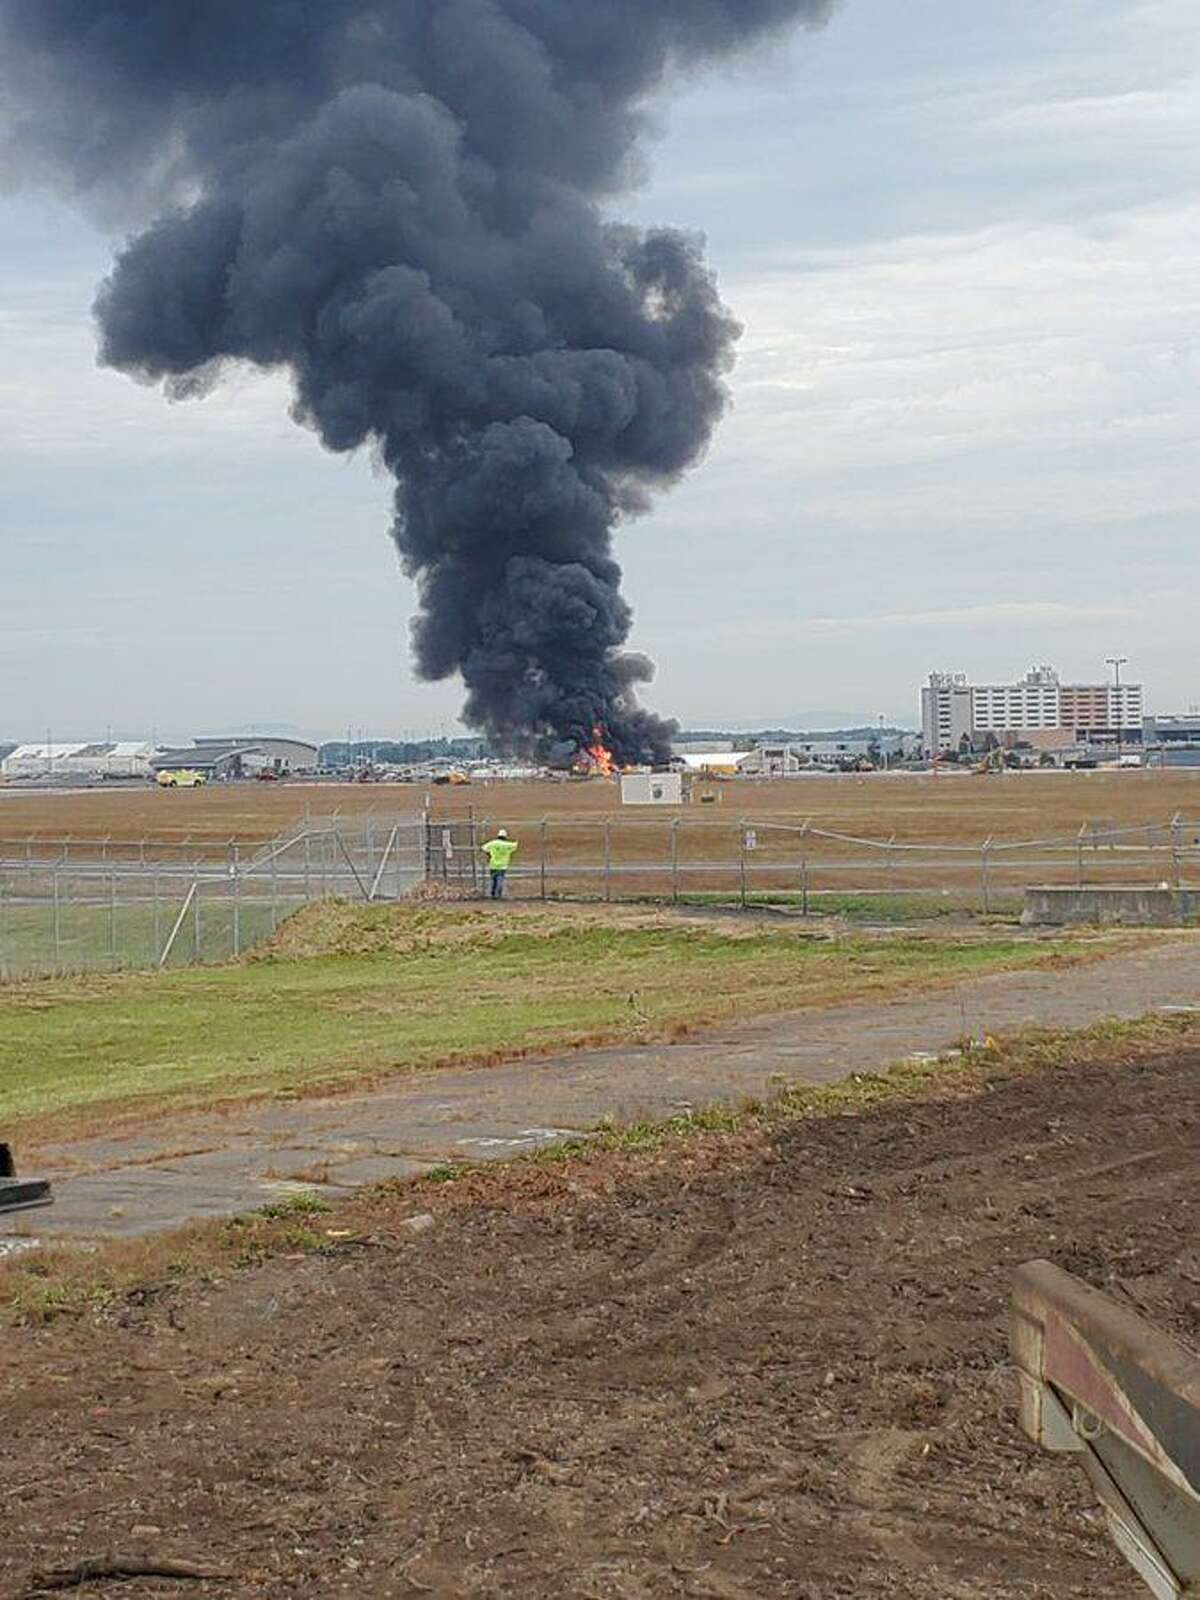 Firefighters are responding to a fire at Bradley International Airport involving an aircraft.